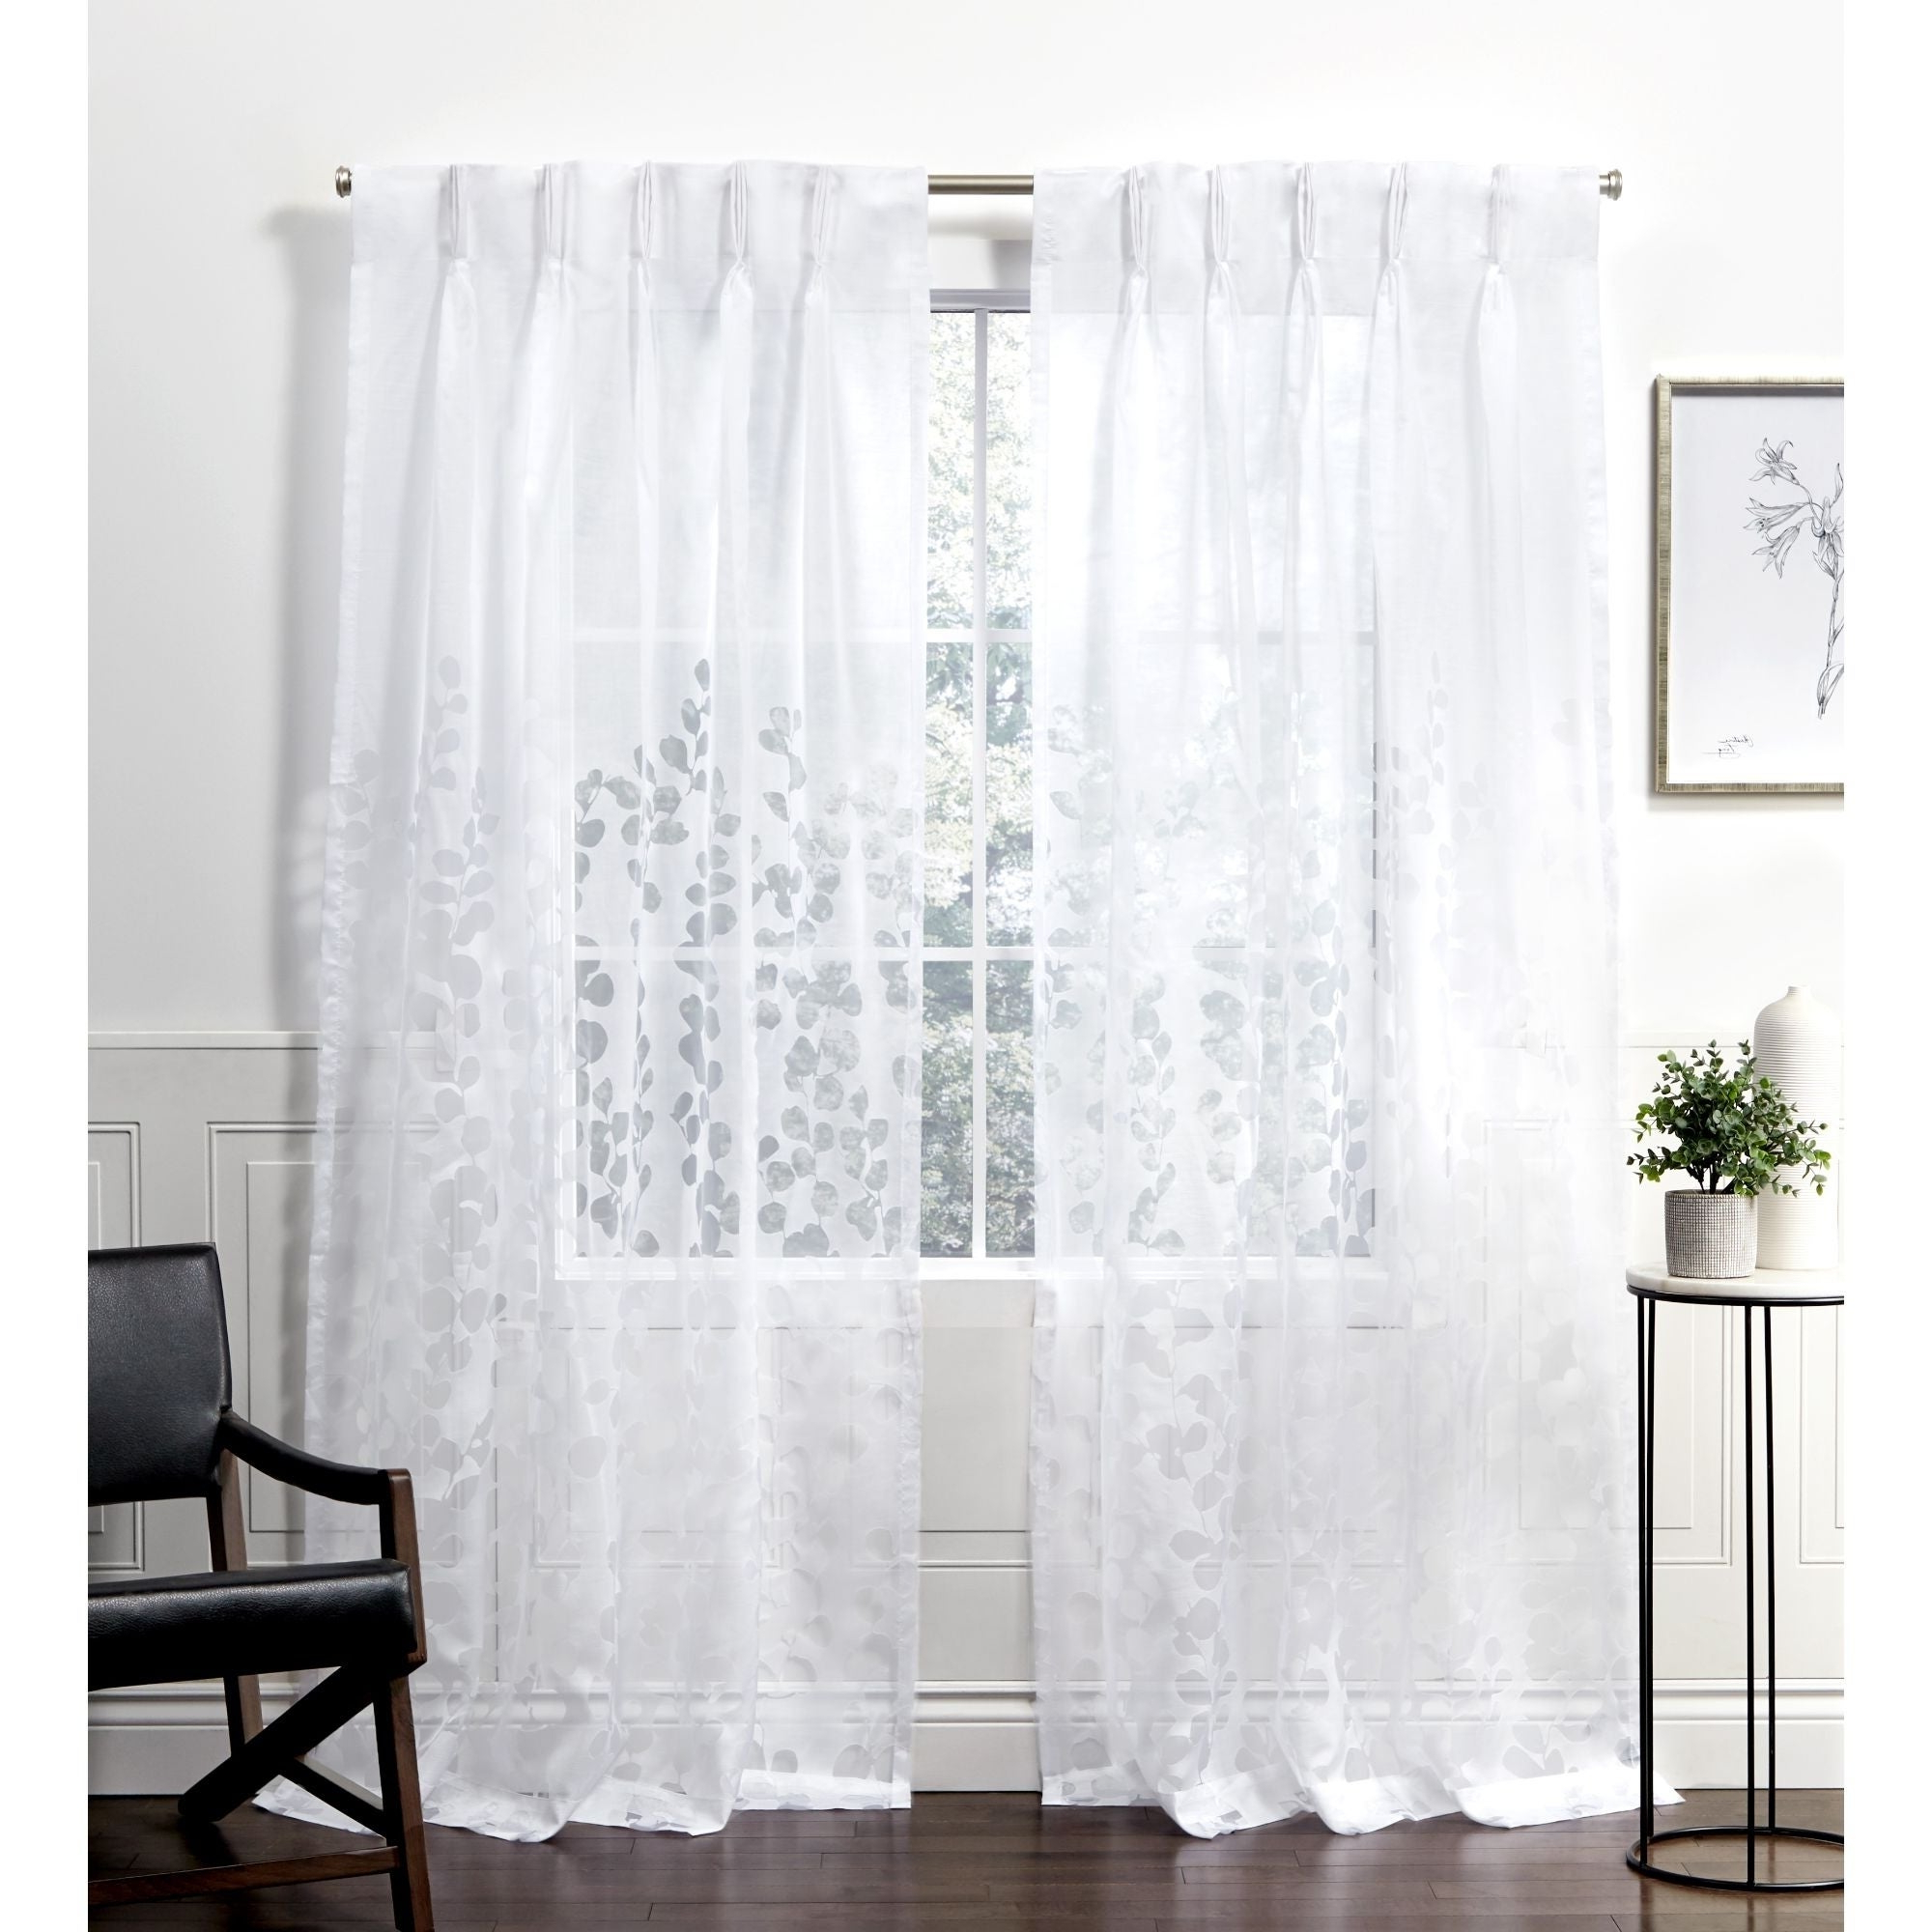 2020 Ati Home Wilshire Burnout Sheer Pinch Pleat Curtain Panel Pair Pertaining To Wilshire Burnout Grommet Top Curtain Panel Pairs (View 4 of 20)